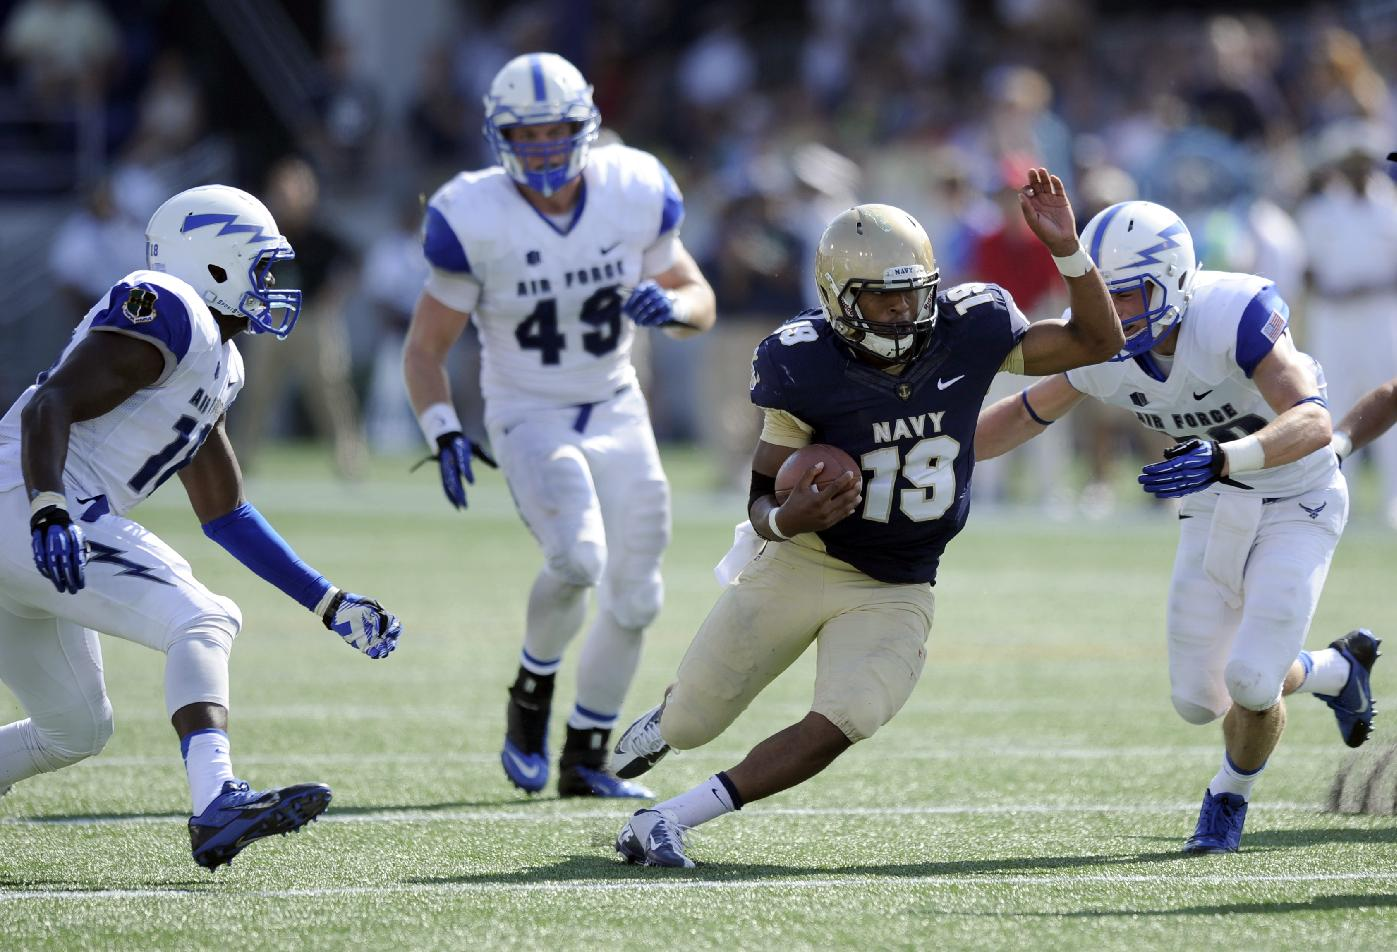 Navy quarterback Keenan Reynolds (19) weaves his way around Air Force defensive back Gavin McHenry, right, Joey Nichol (49) and Reggie Barnes, left, during the second half of an NCAA football game, Saturday, Oct. 5, 2013, in Annapolis, Md. Navy won 28-10